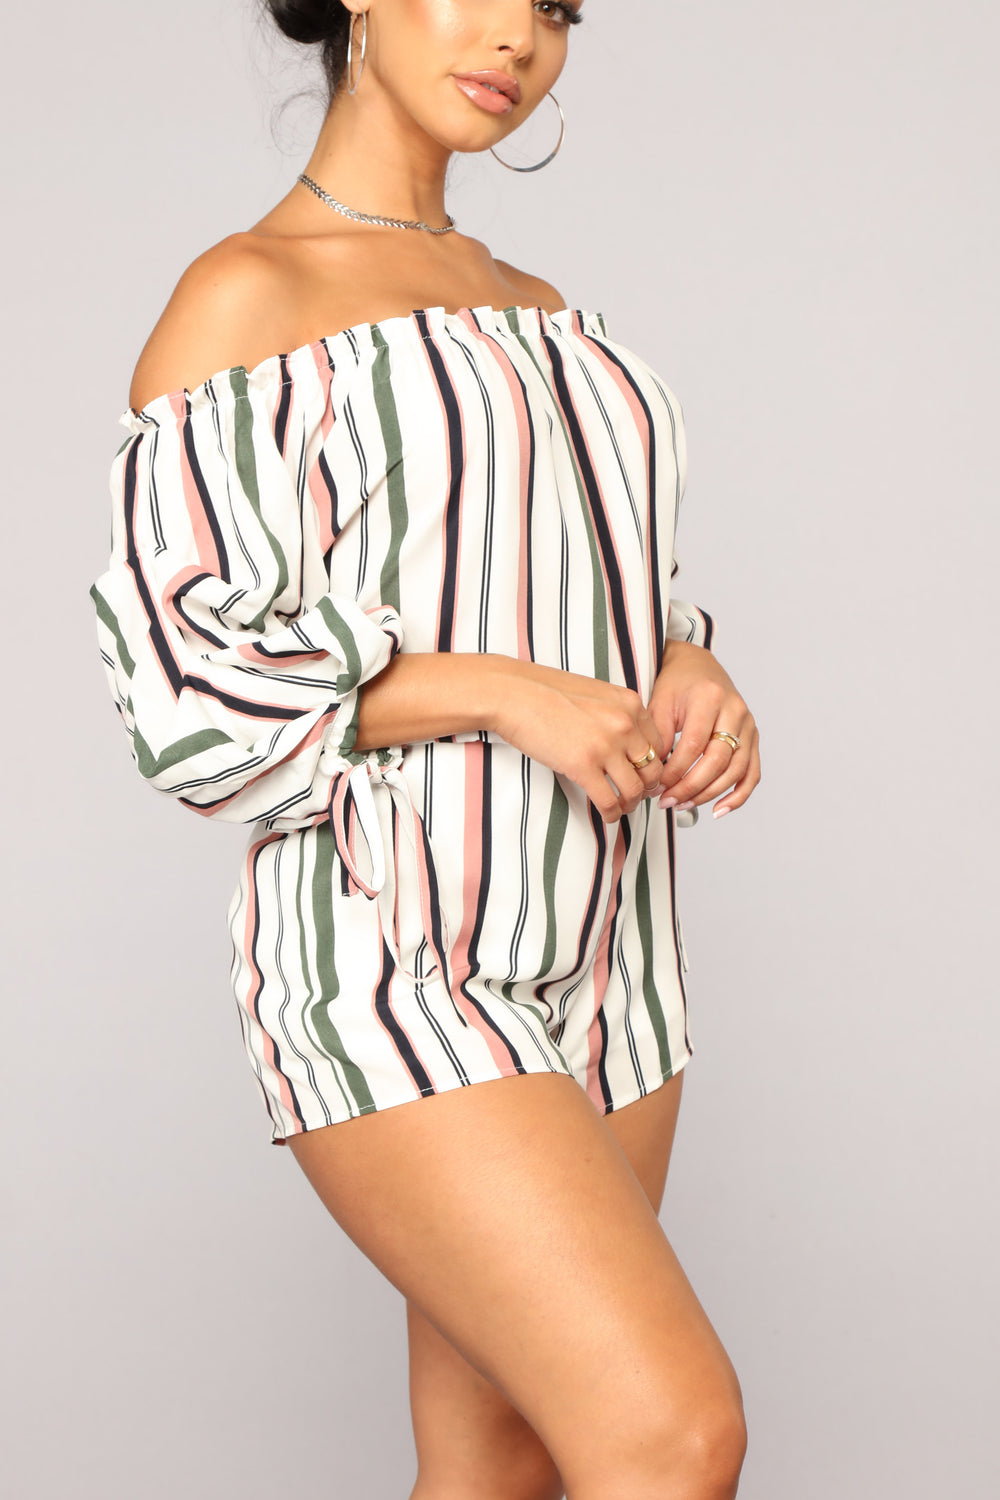 Out To Play Striped Romper - White